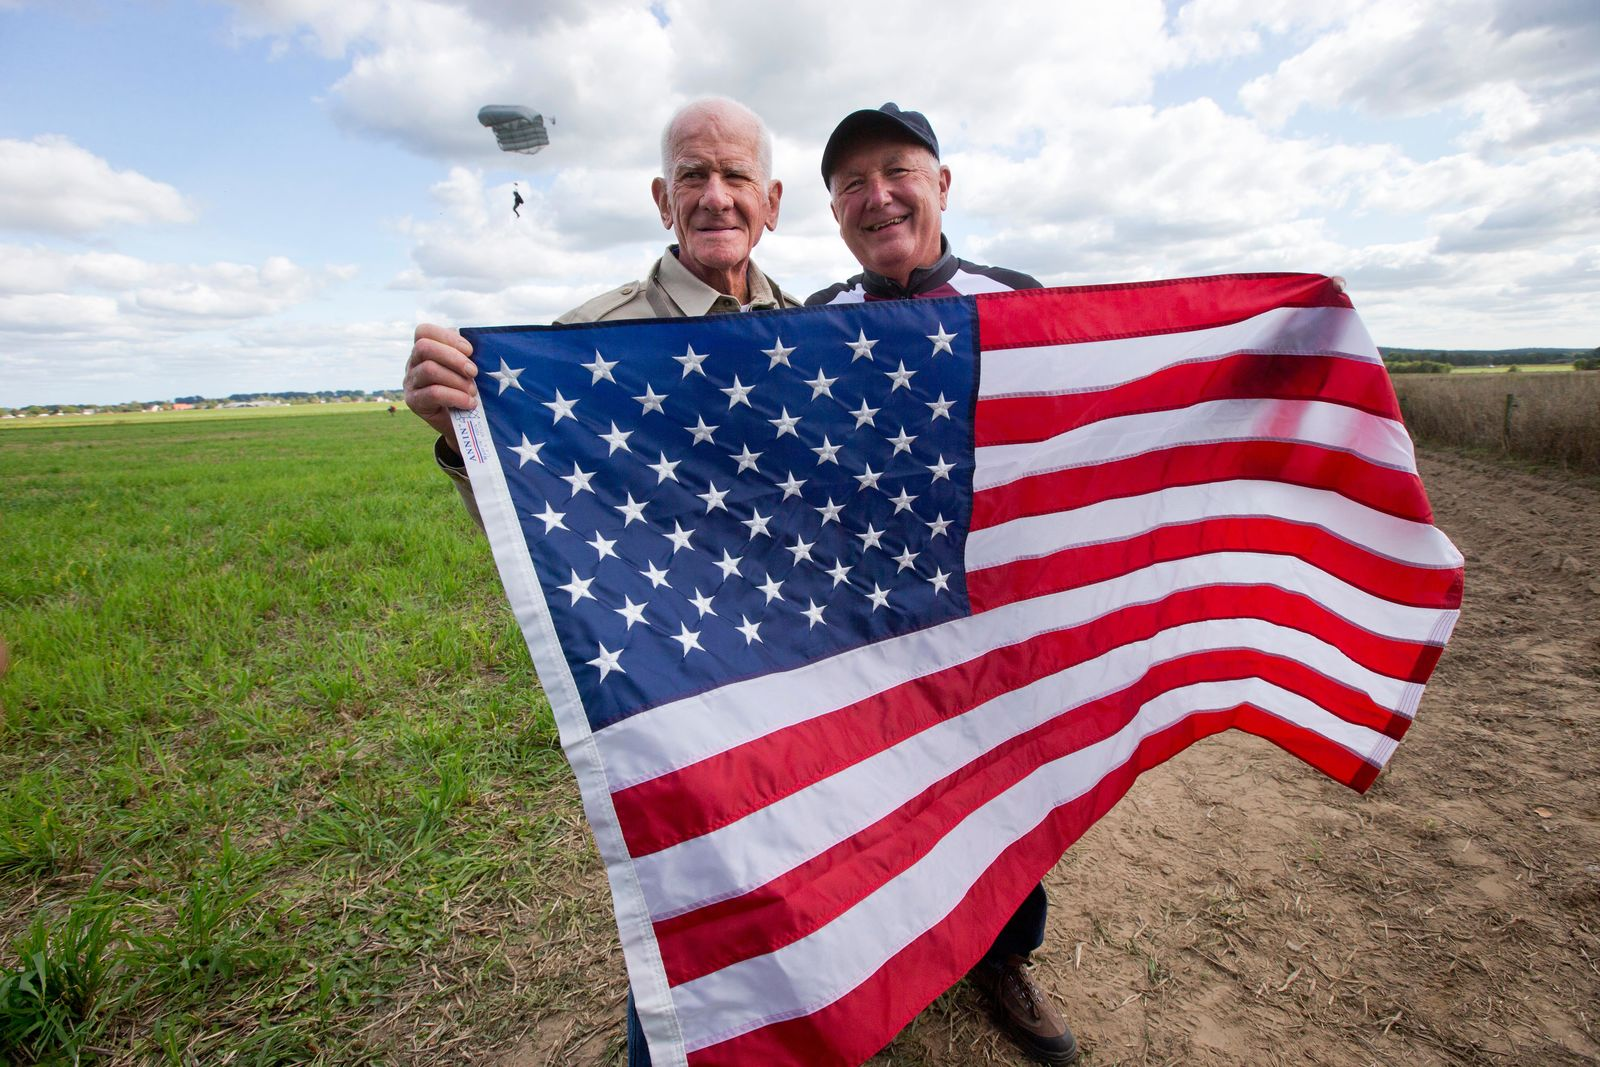 Tom Rice, a 98-year-old American WWII veteran, and U.S. Ambassador Pete Hoekstra, right, pose with the U.S. flag after landing with a tandem parachute jump from a plane near Groesbeek, Netherlands, Thursday, Sept. 19, 2019, as part of commemorations marking the 75th anniversary of Operation Market Garden. Rice jumped with the U.S. Army's 101st Airborne Division in Normandy, landing safely despite catching himself on the exit and a bullet striking his parachute. (AP Photo/Peter Dejong)